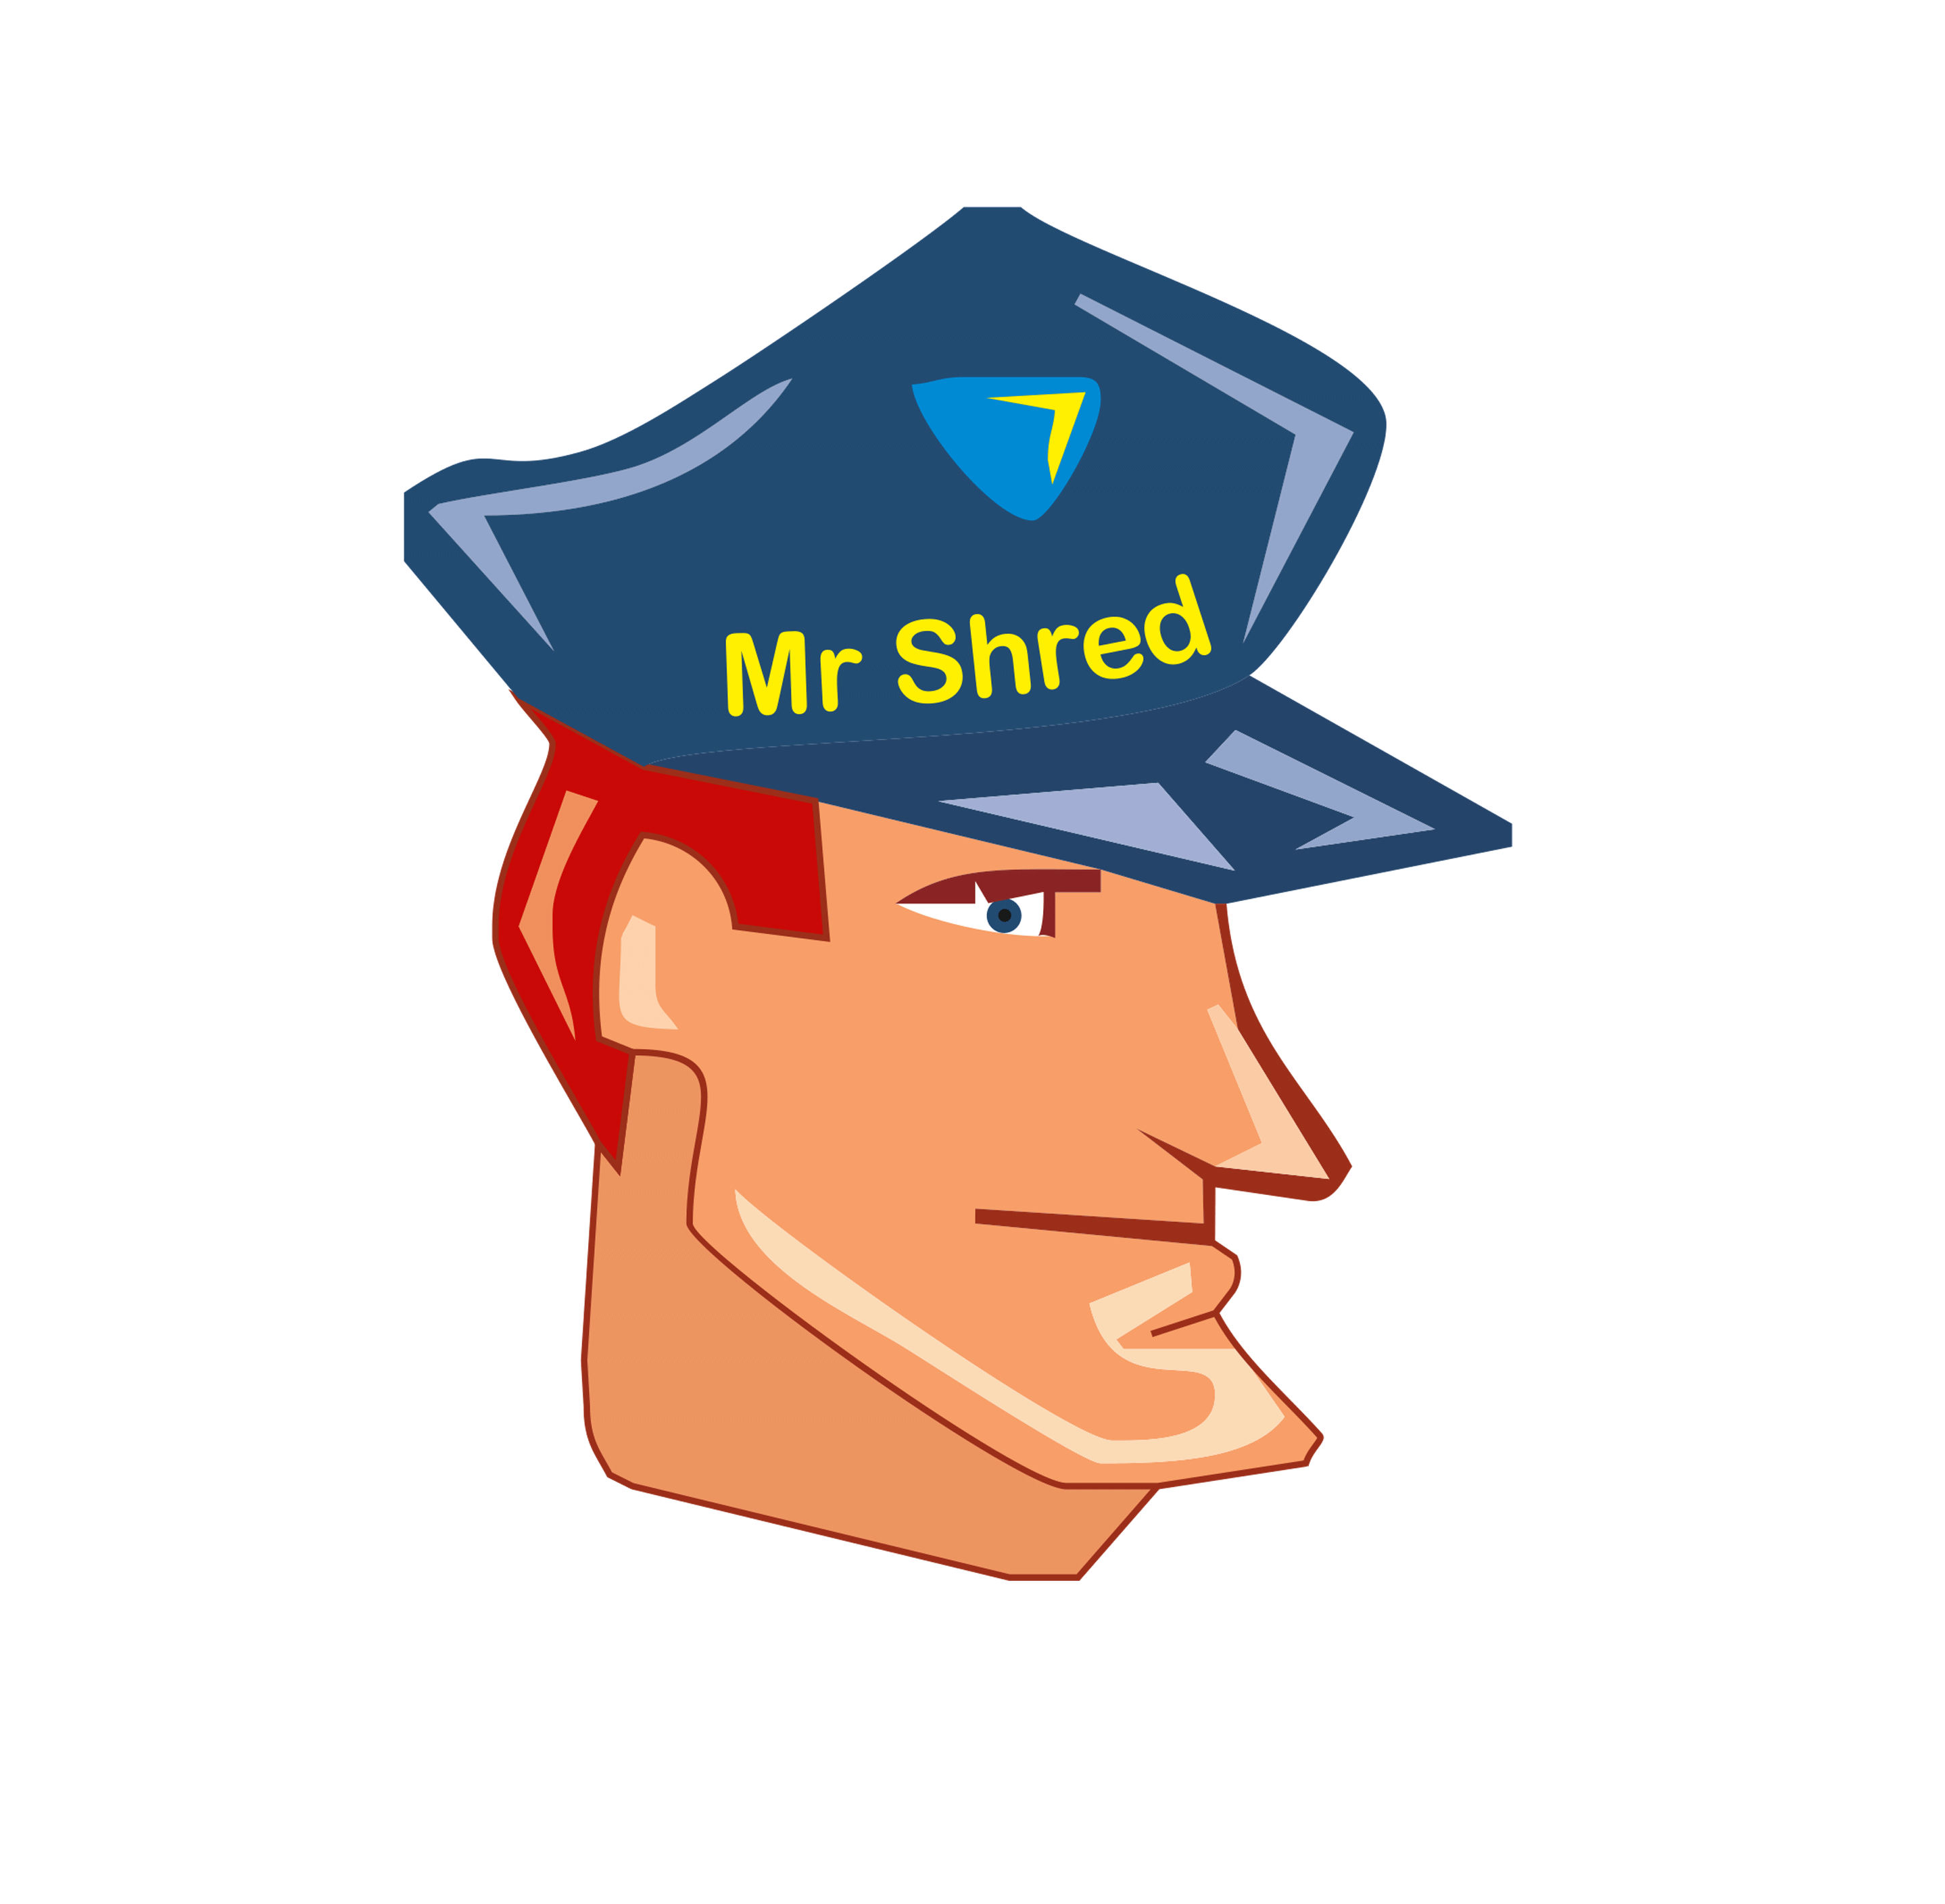 Baseball shredding clipart. Secure with mr shred